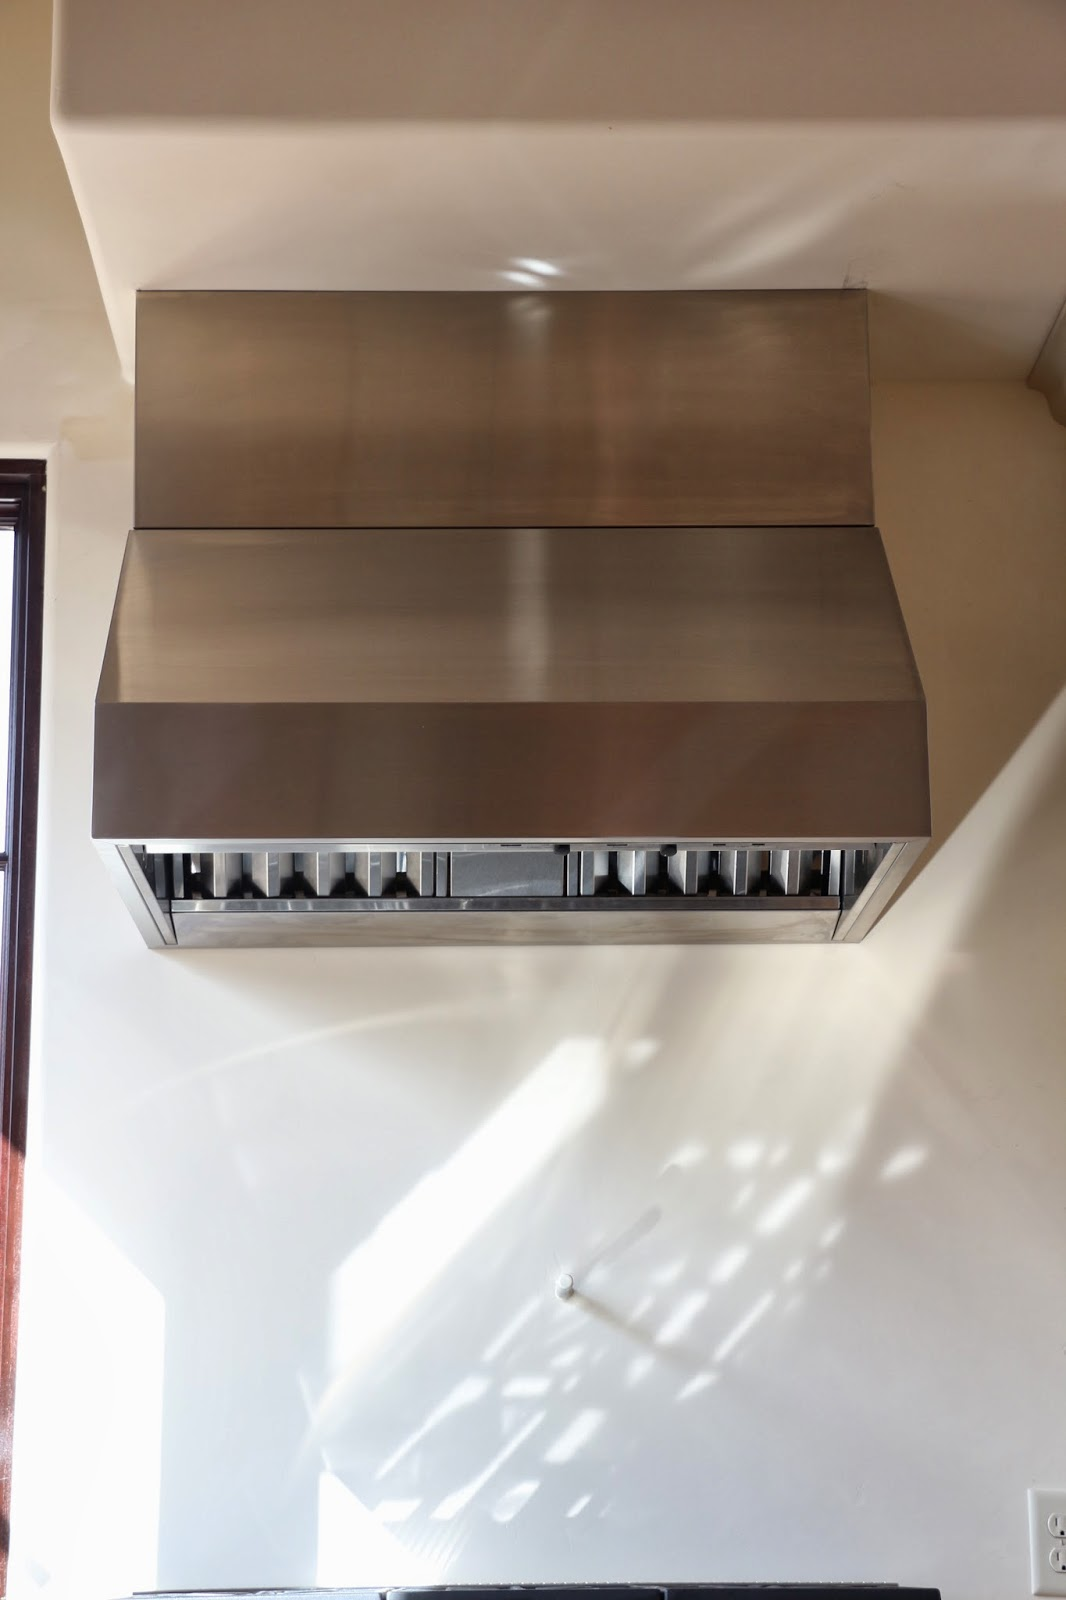 proline prov range hood and chimney